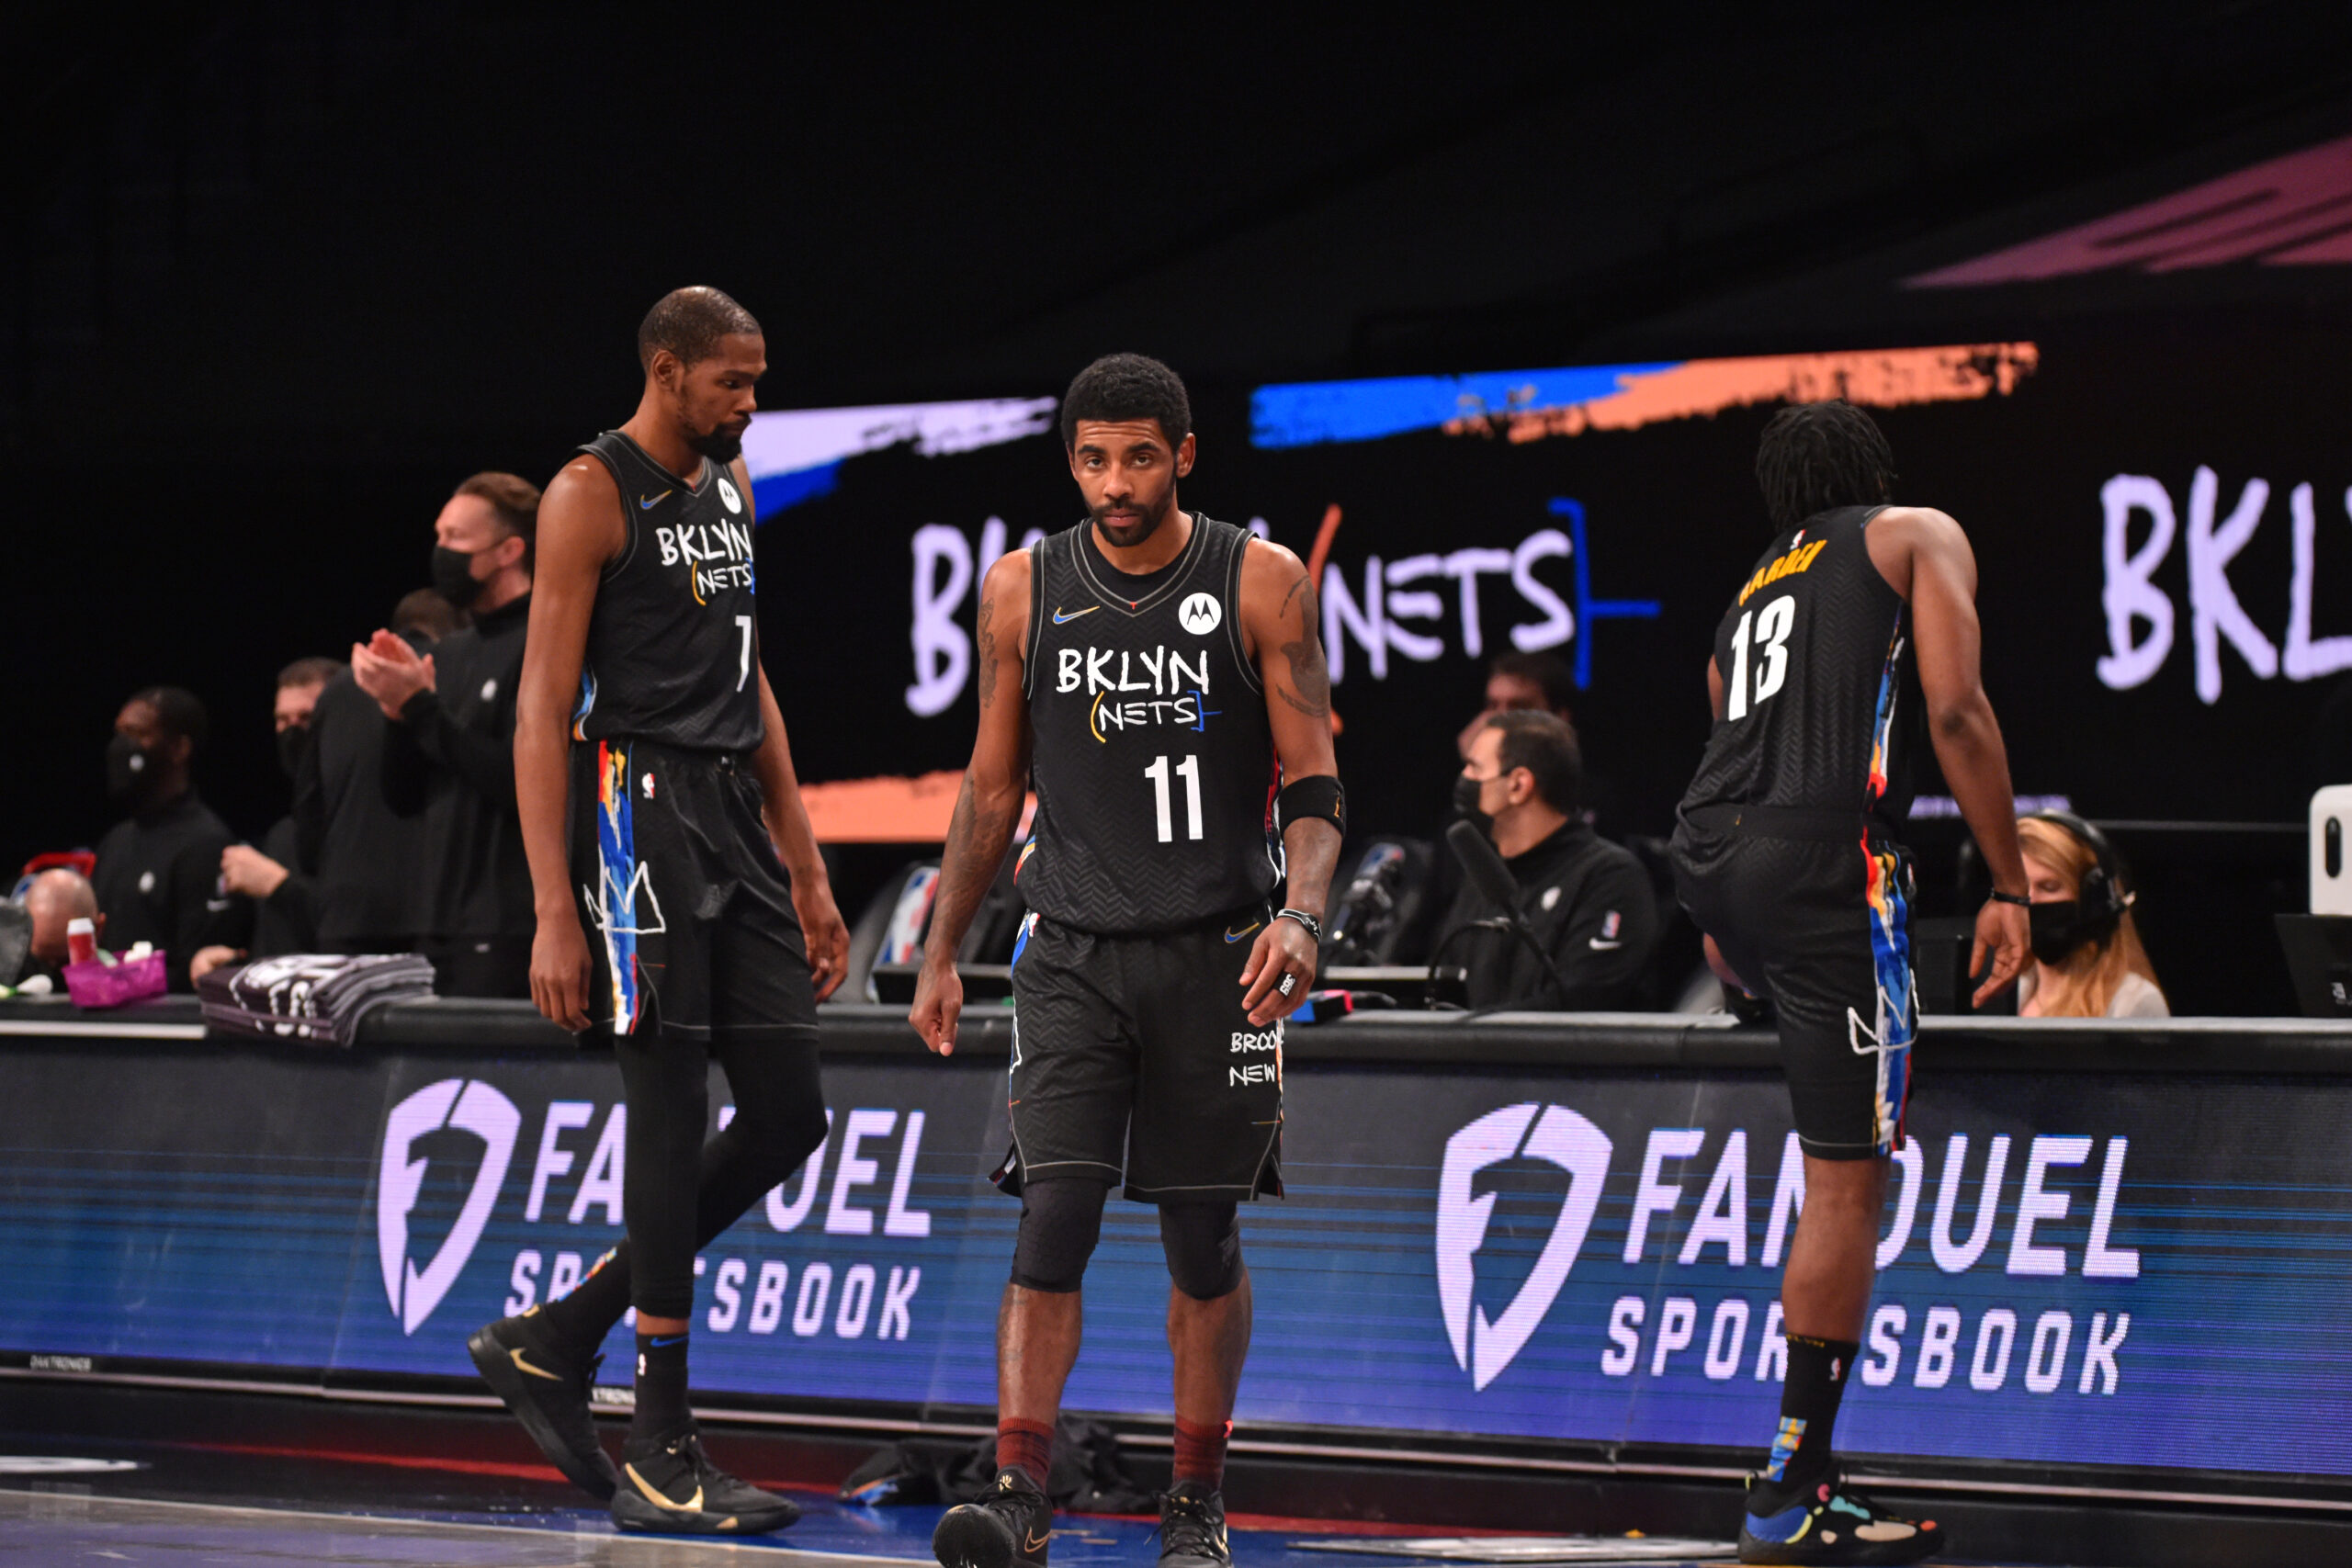 Nets' Big 3 expected to end 3-month absence Saturday